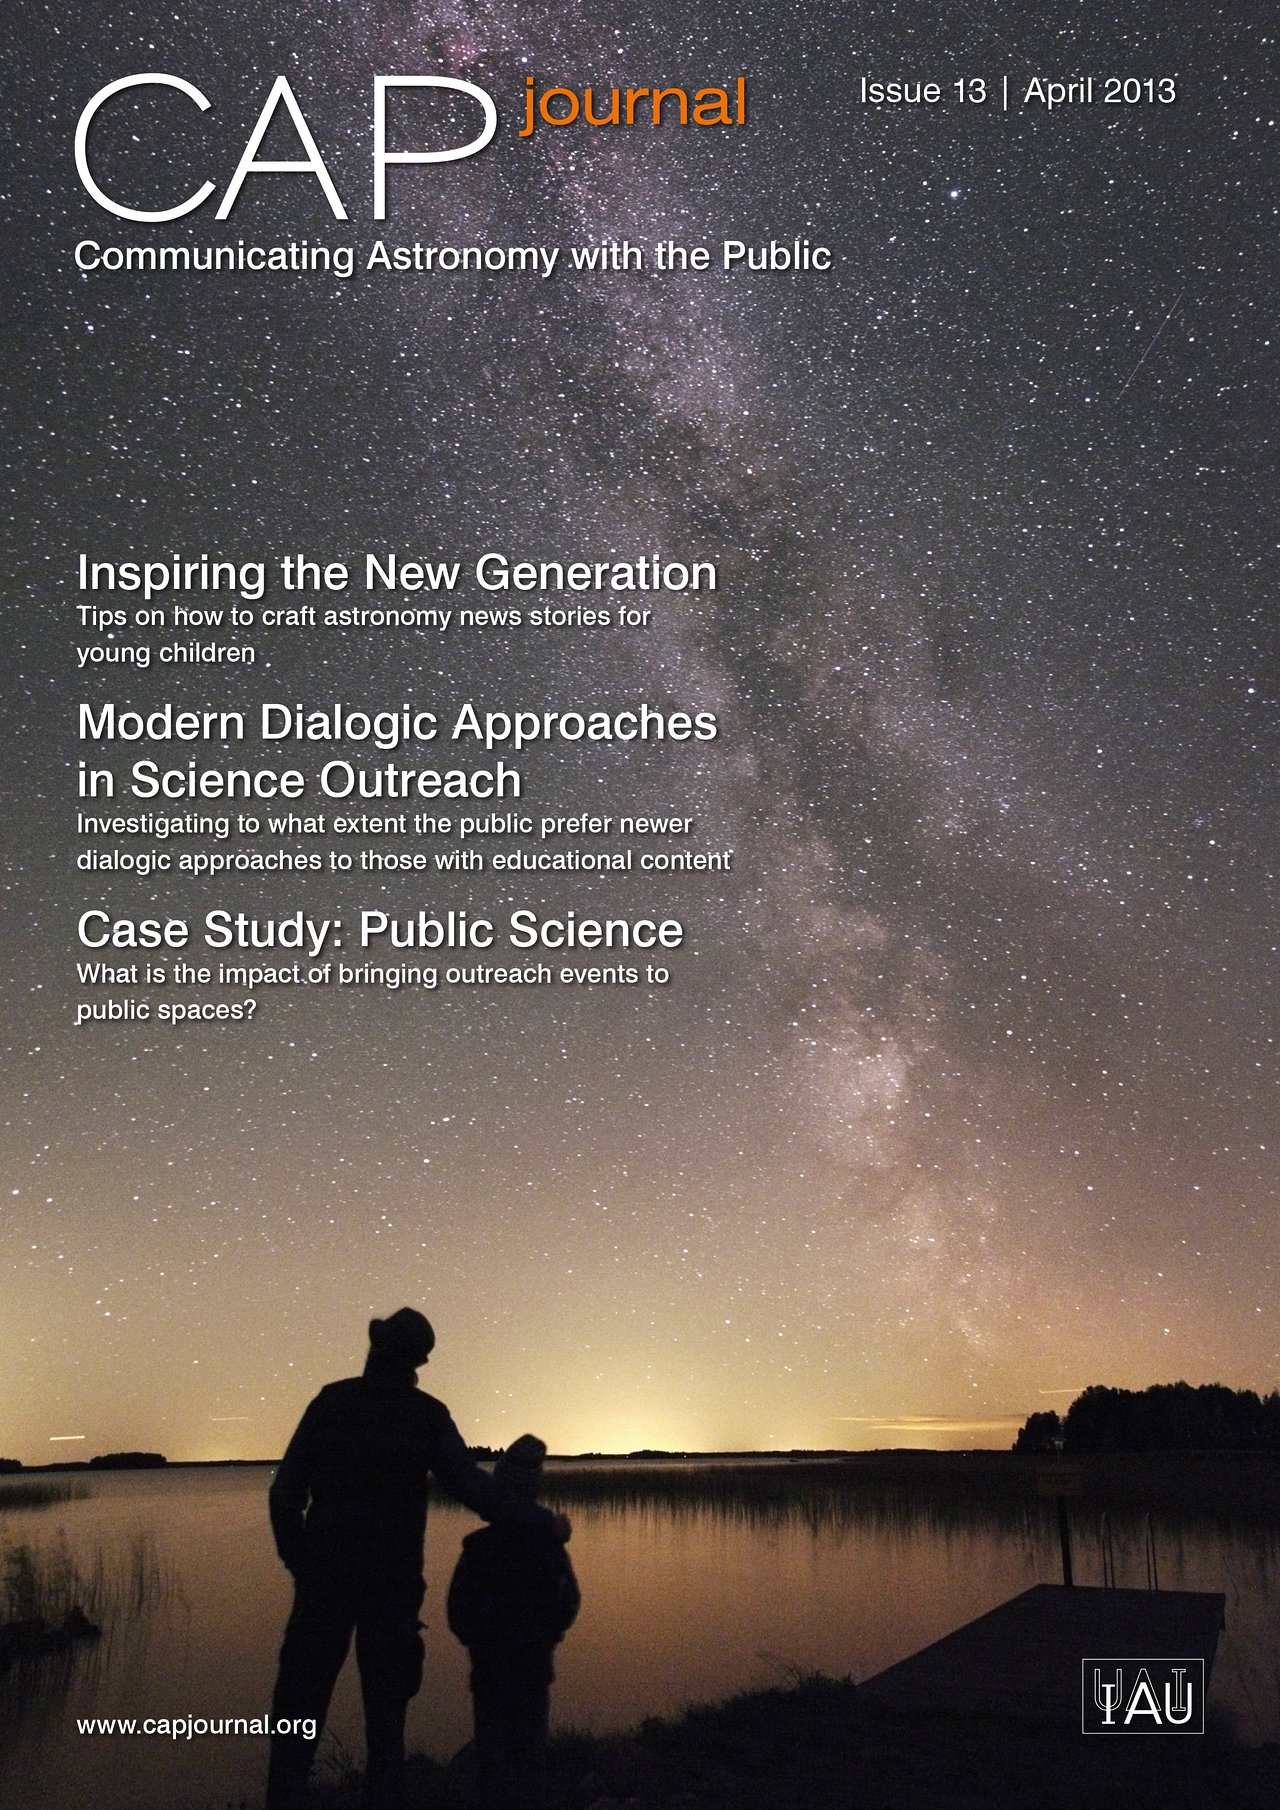 Cover of CAPjournal issue 13